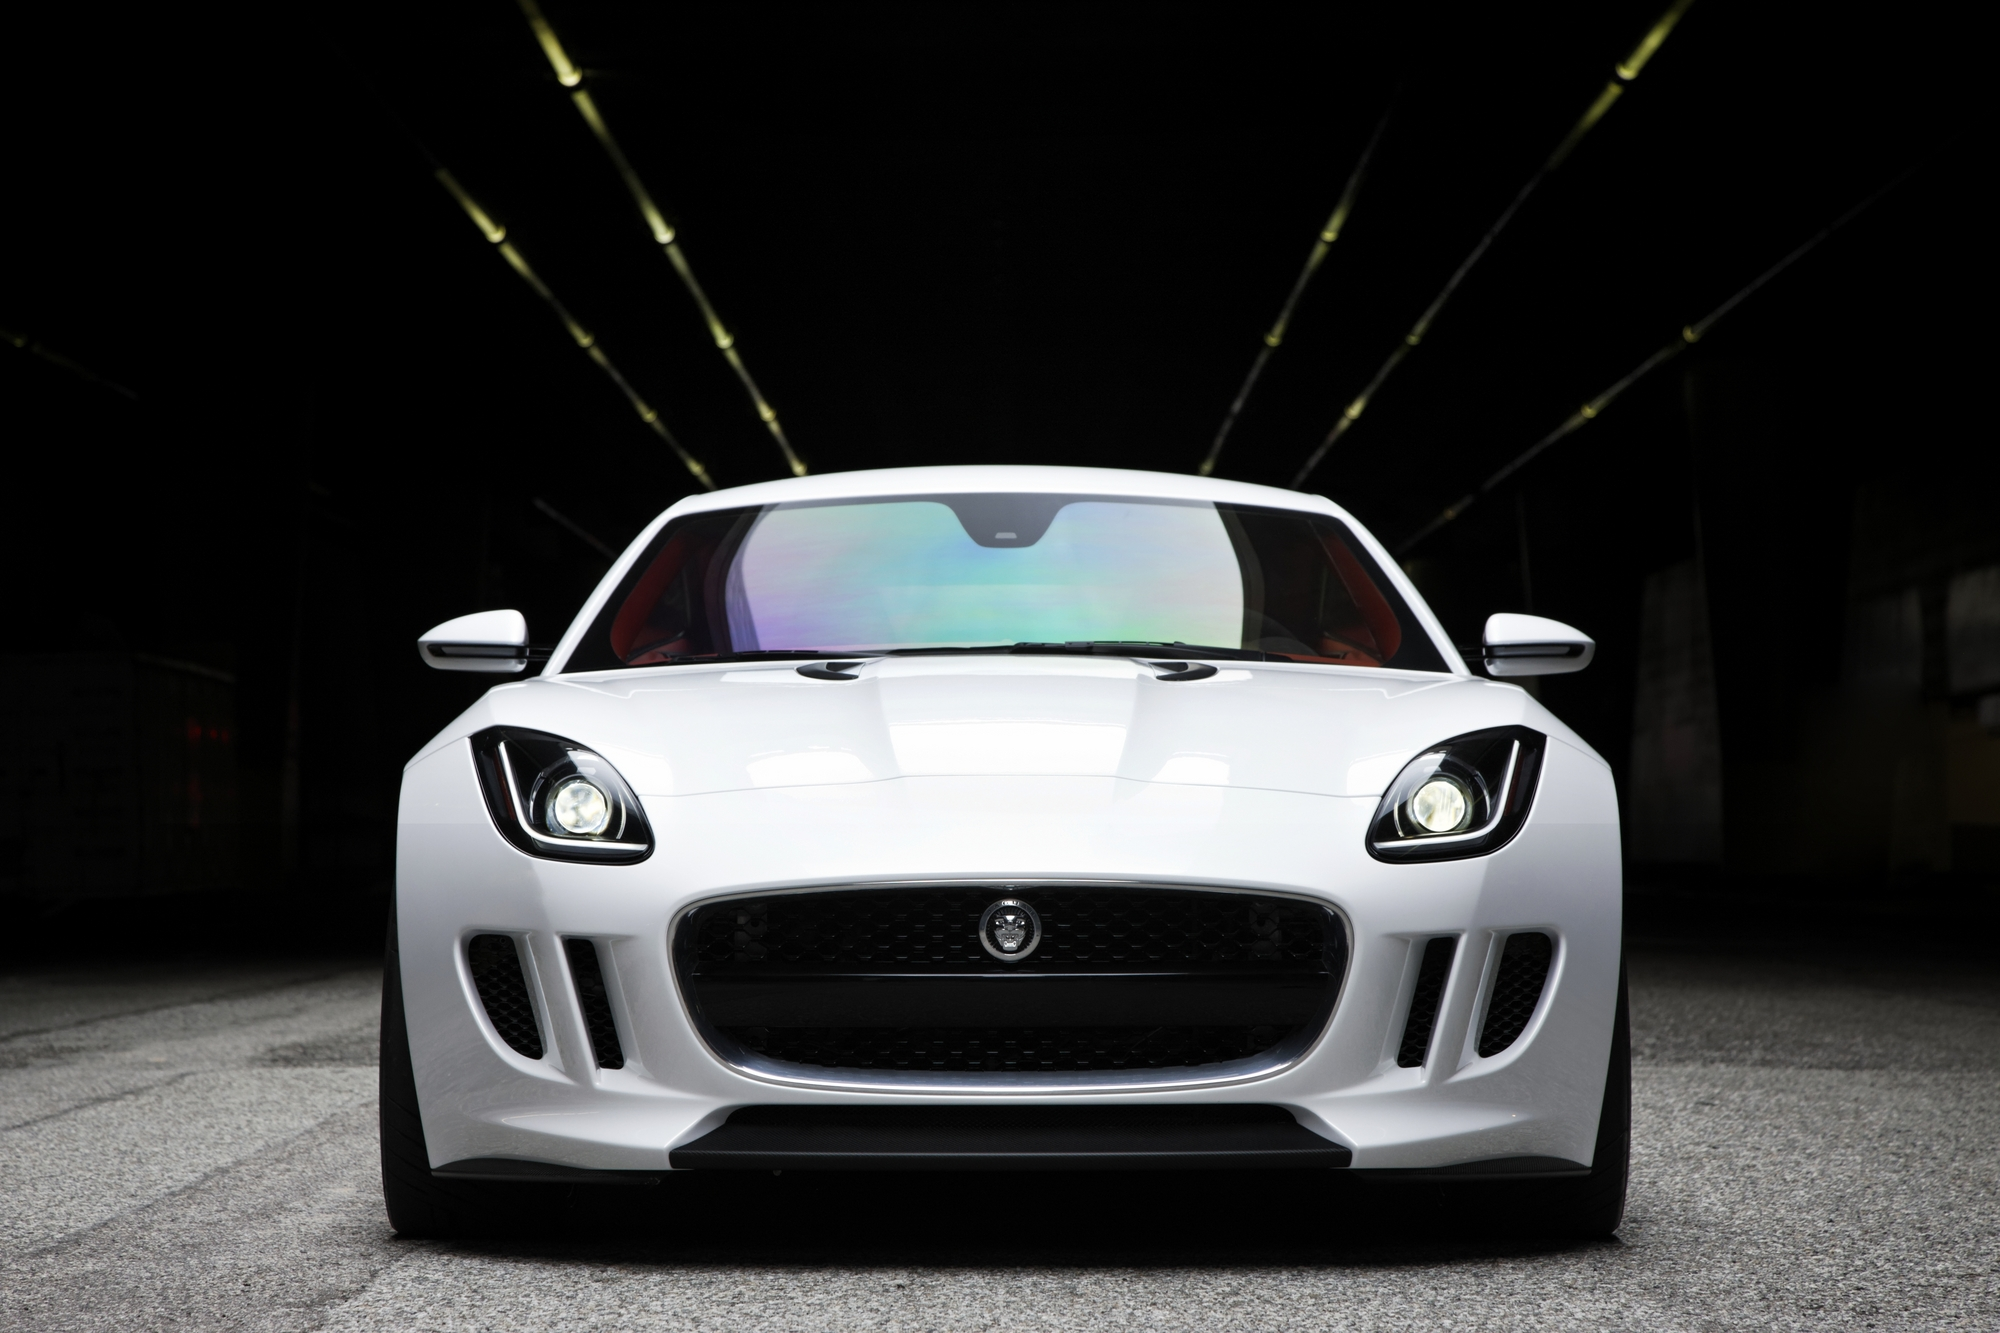 jaguar f type hd 35574 2000x1333 px ~ hdwallsource